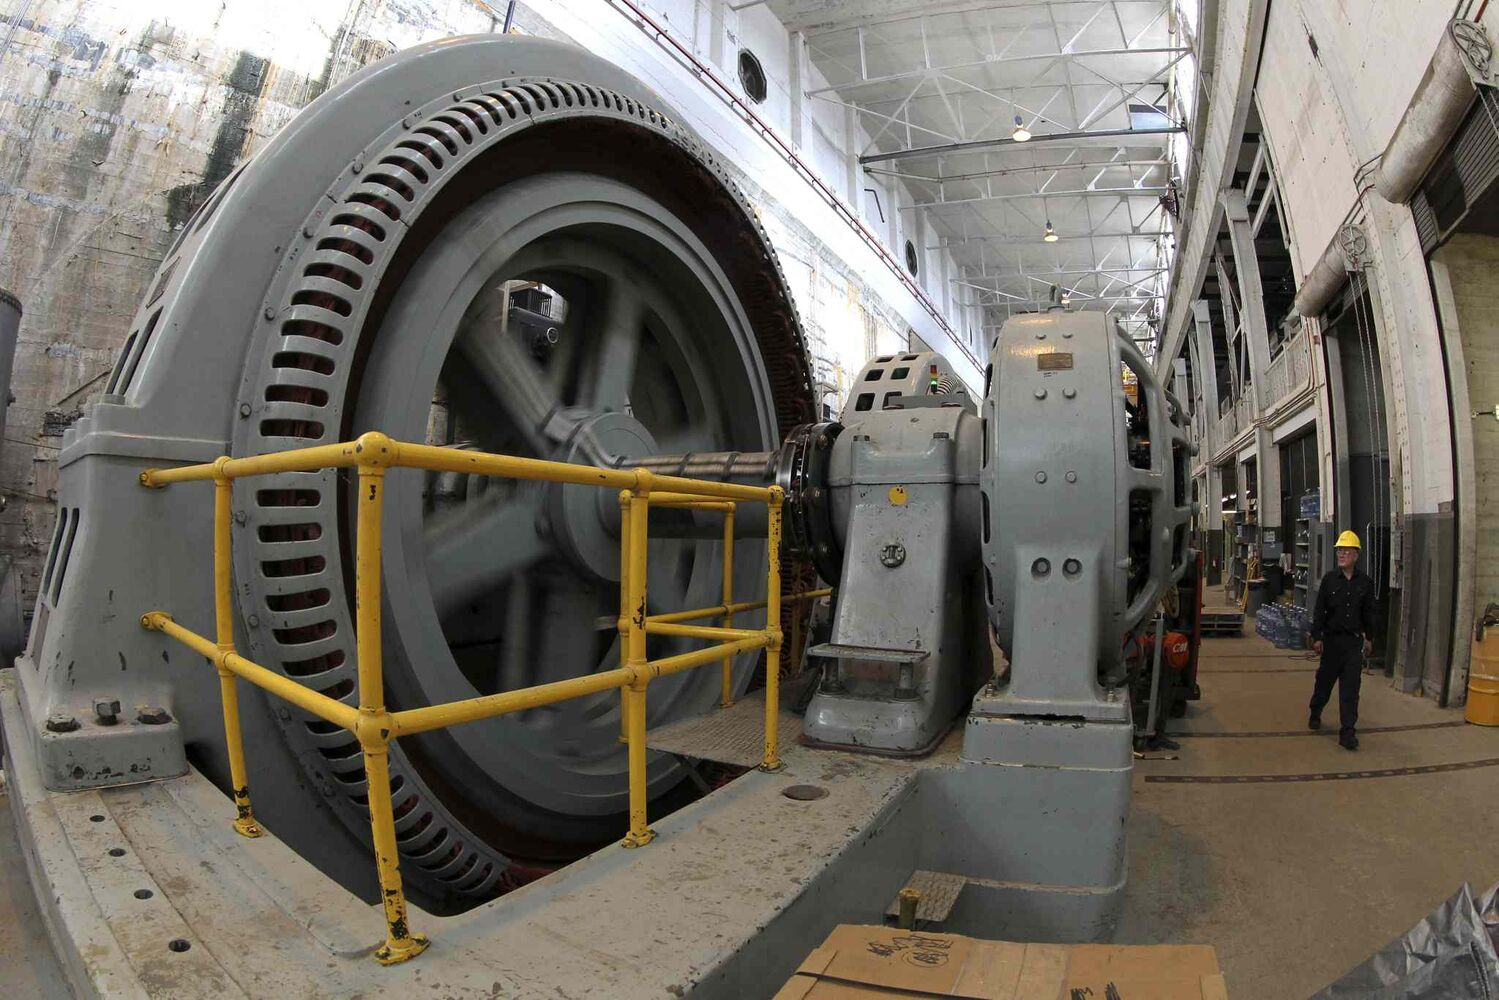 The power plant that houses all the generators that produce the electricity for Winnipeg. Much of the equipment is original and very outdated.  MIKE DEAL / WINNIPEG FREE PRESS